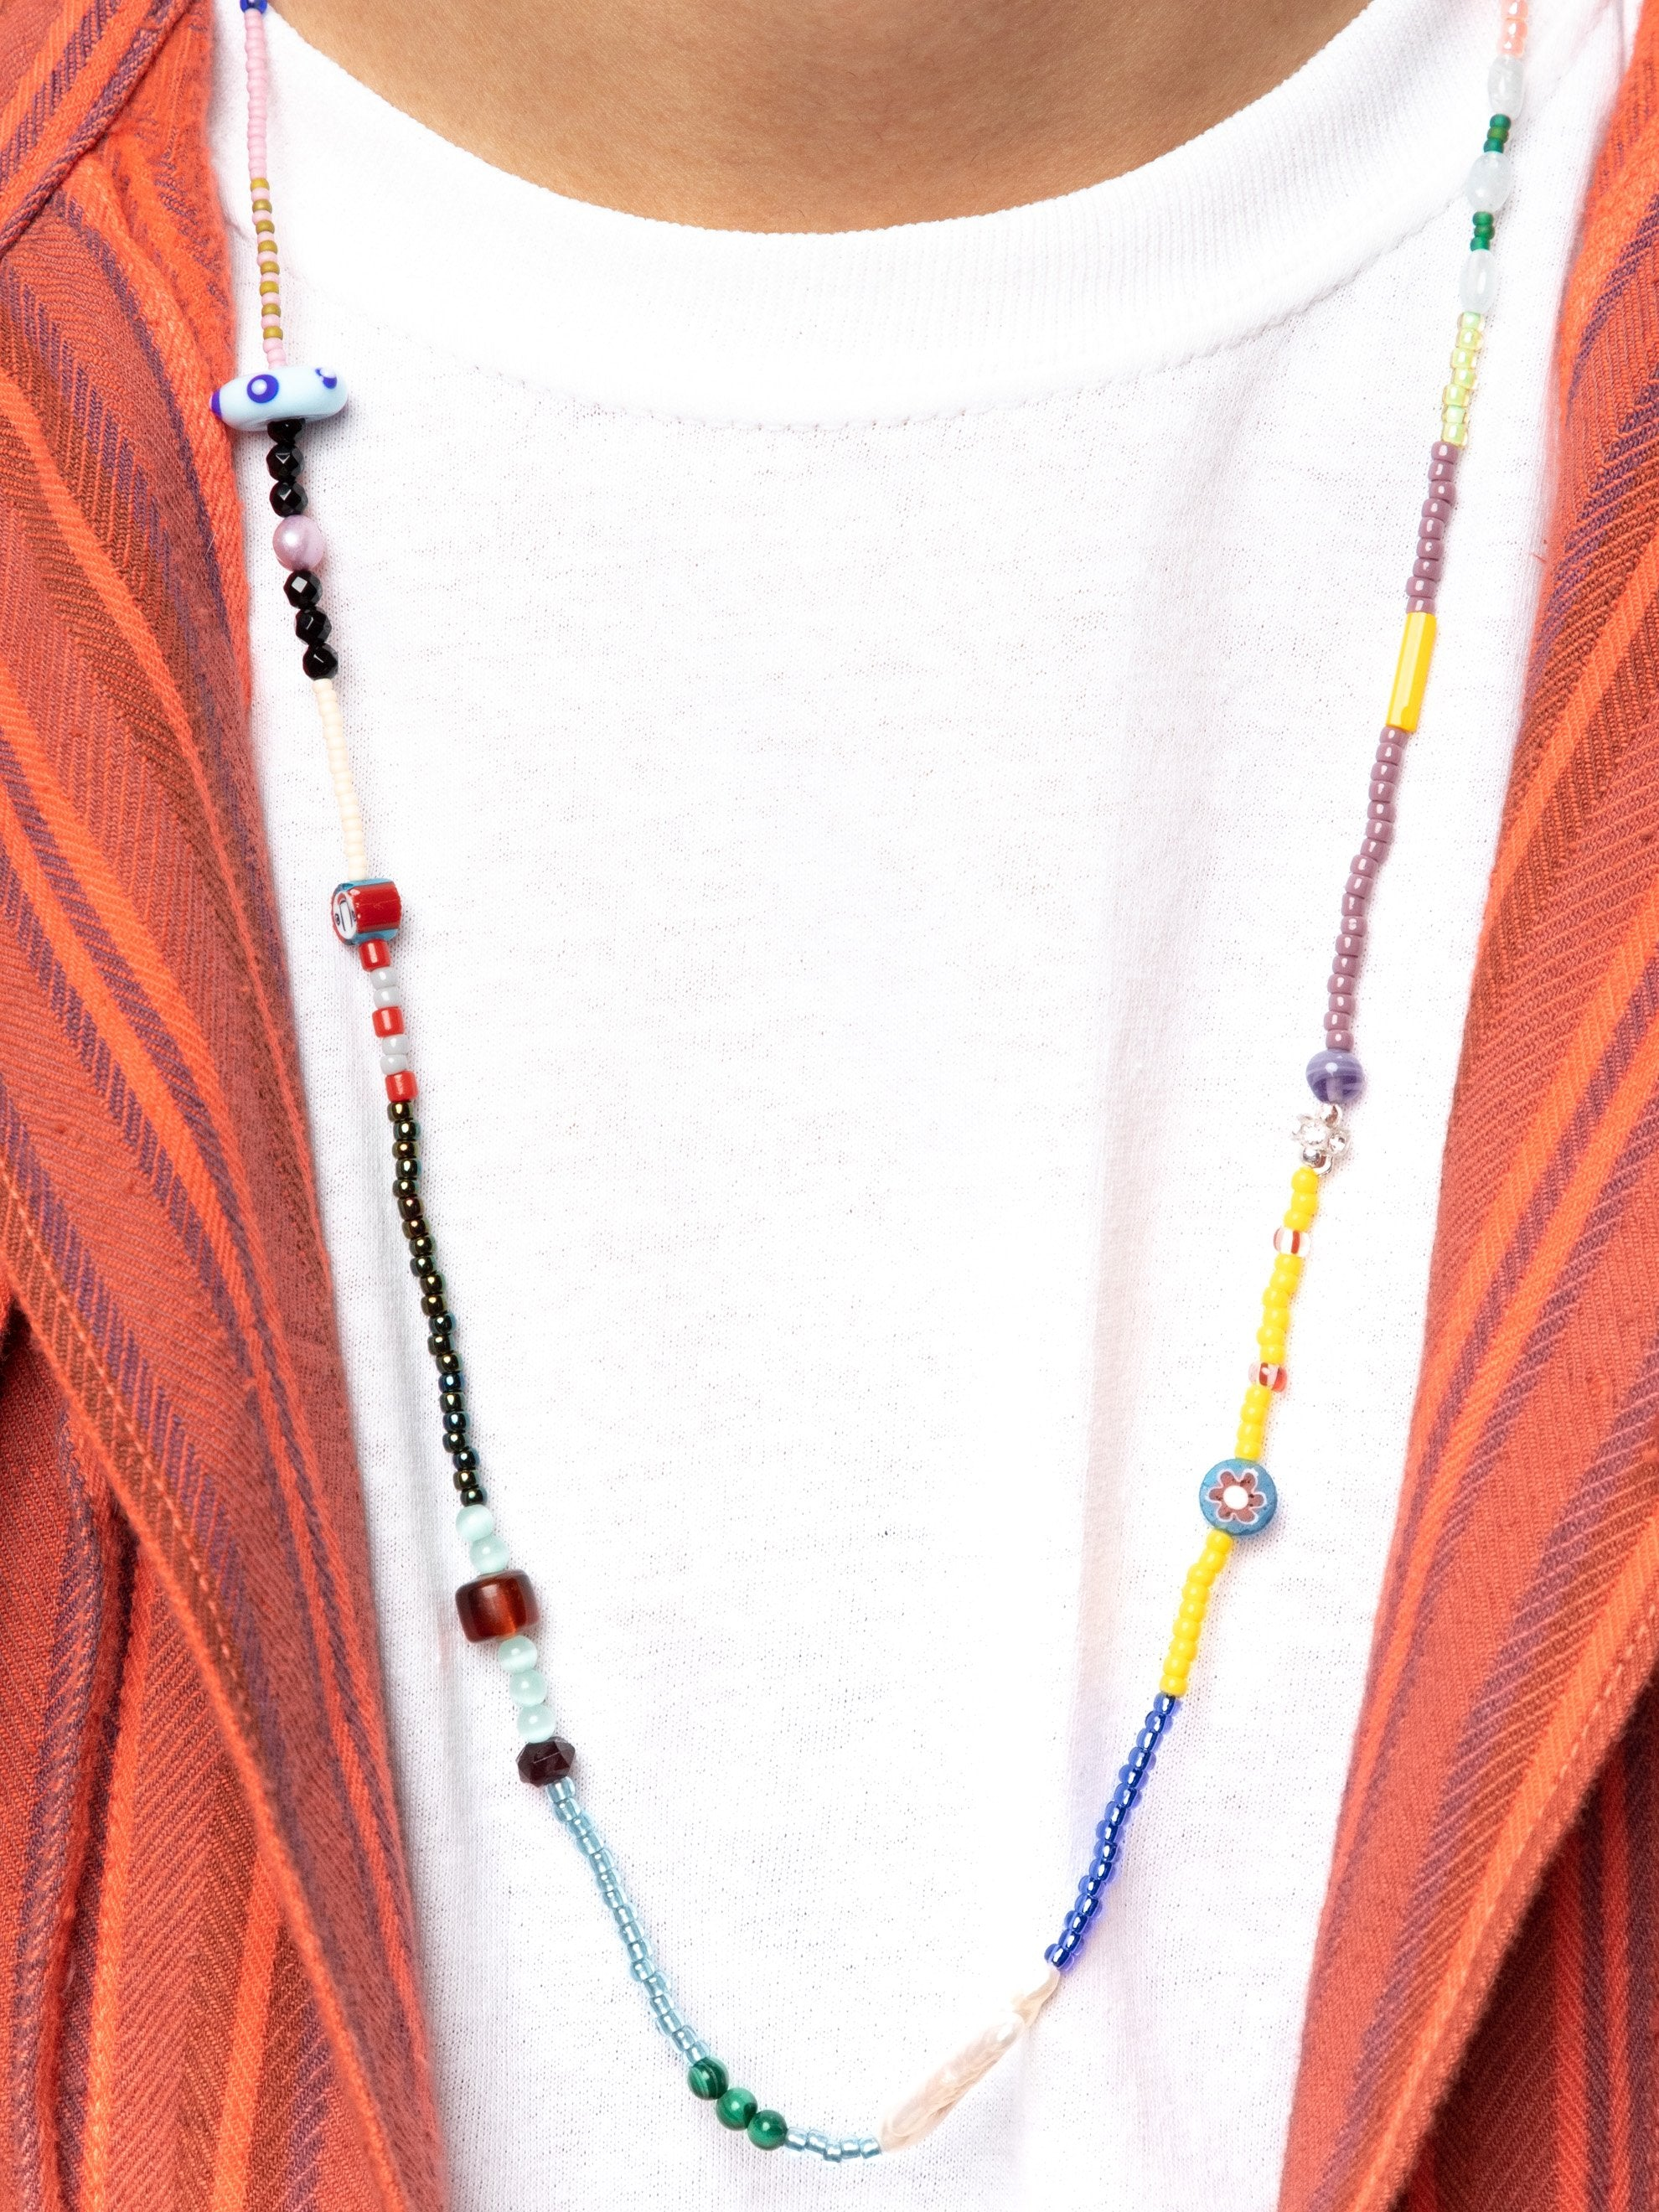 One Size Vibeswell Beaded Necklace 3